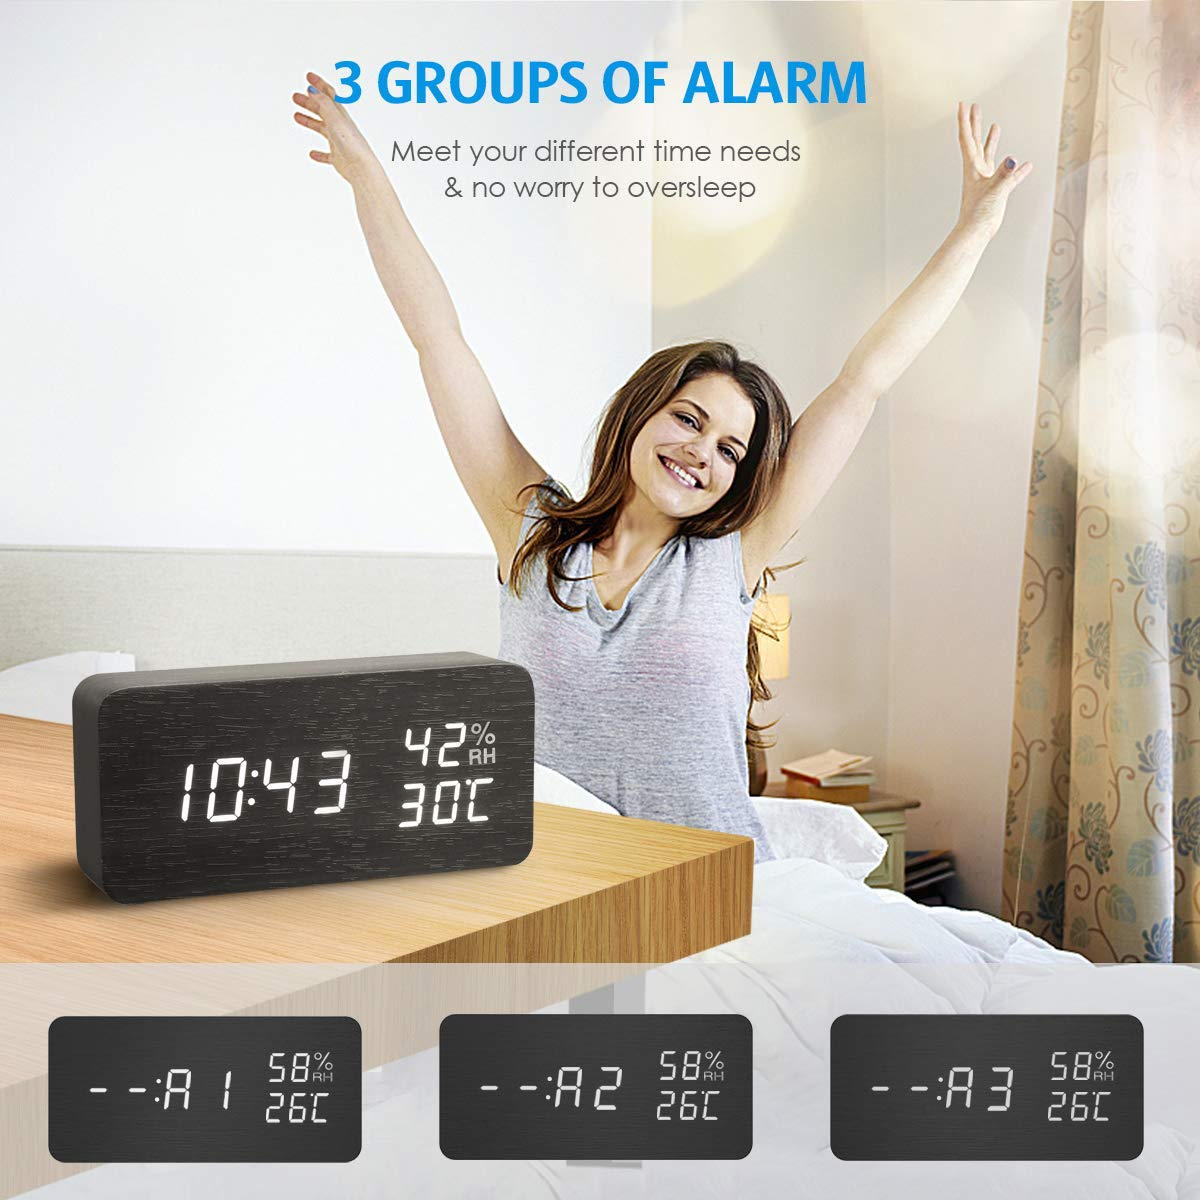 AMIR Alarm Clock, Wooden Digital Multi-Function Modern Cube LED Light, Smart Voice-Activated with 3 Alarm Sounds, Display Date Temperature & Humidity for Home, Kitchen, Bedroom (Black) by AMIR (Image #5)